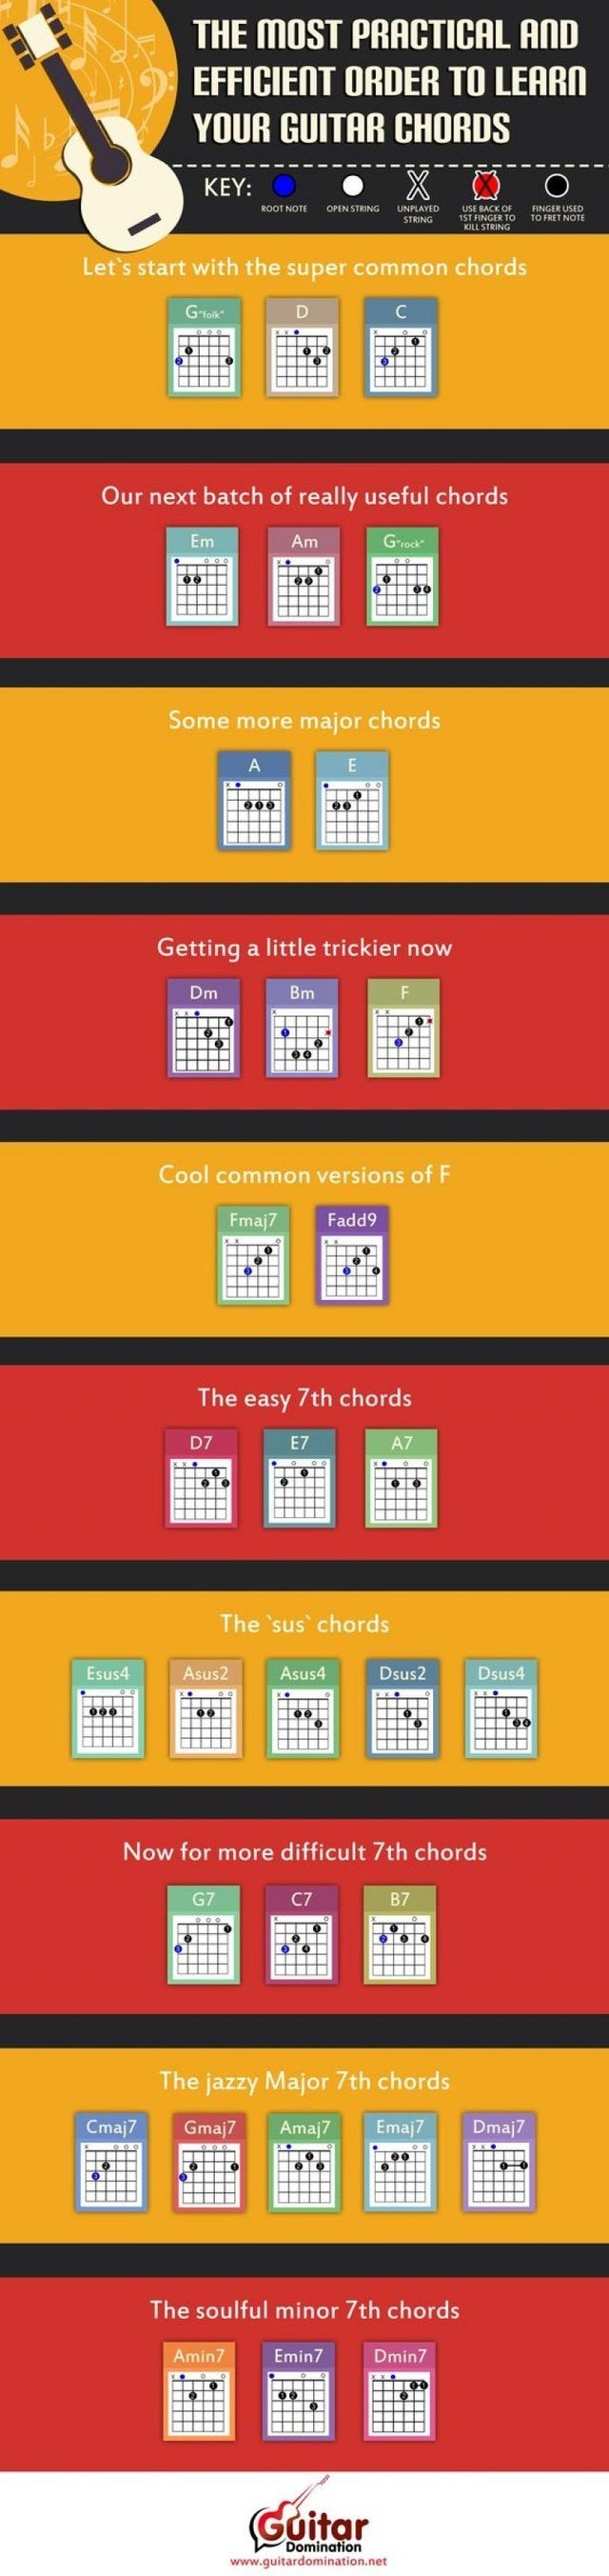 "top ten daily infographics guides | MOST PRACTICAL AND EFFICIENT ORDER LEARN GUITAR CHORDS KEY: ROOT NOTE OPEN STRING UNPLAYED STRING USE BACK 15T FINGER FINGER USED FRET NOTE KILL STRING Let's start with super common chords ""folk Our next batch really useful chords Em Am Grock Some more major chords Getting little trickier now Dm Bm Cool common versions F Fmaj7 Fadd9 easy 7th chords D7 E7 A7 sus chords Esus4 Asus2 Asus4 Dsus2 Dsus4 Now more difficult 7th chords G7 B7 jazzy Major 7th chords Cmaj"